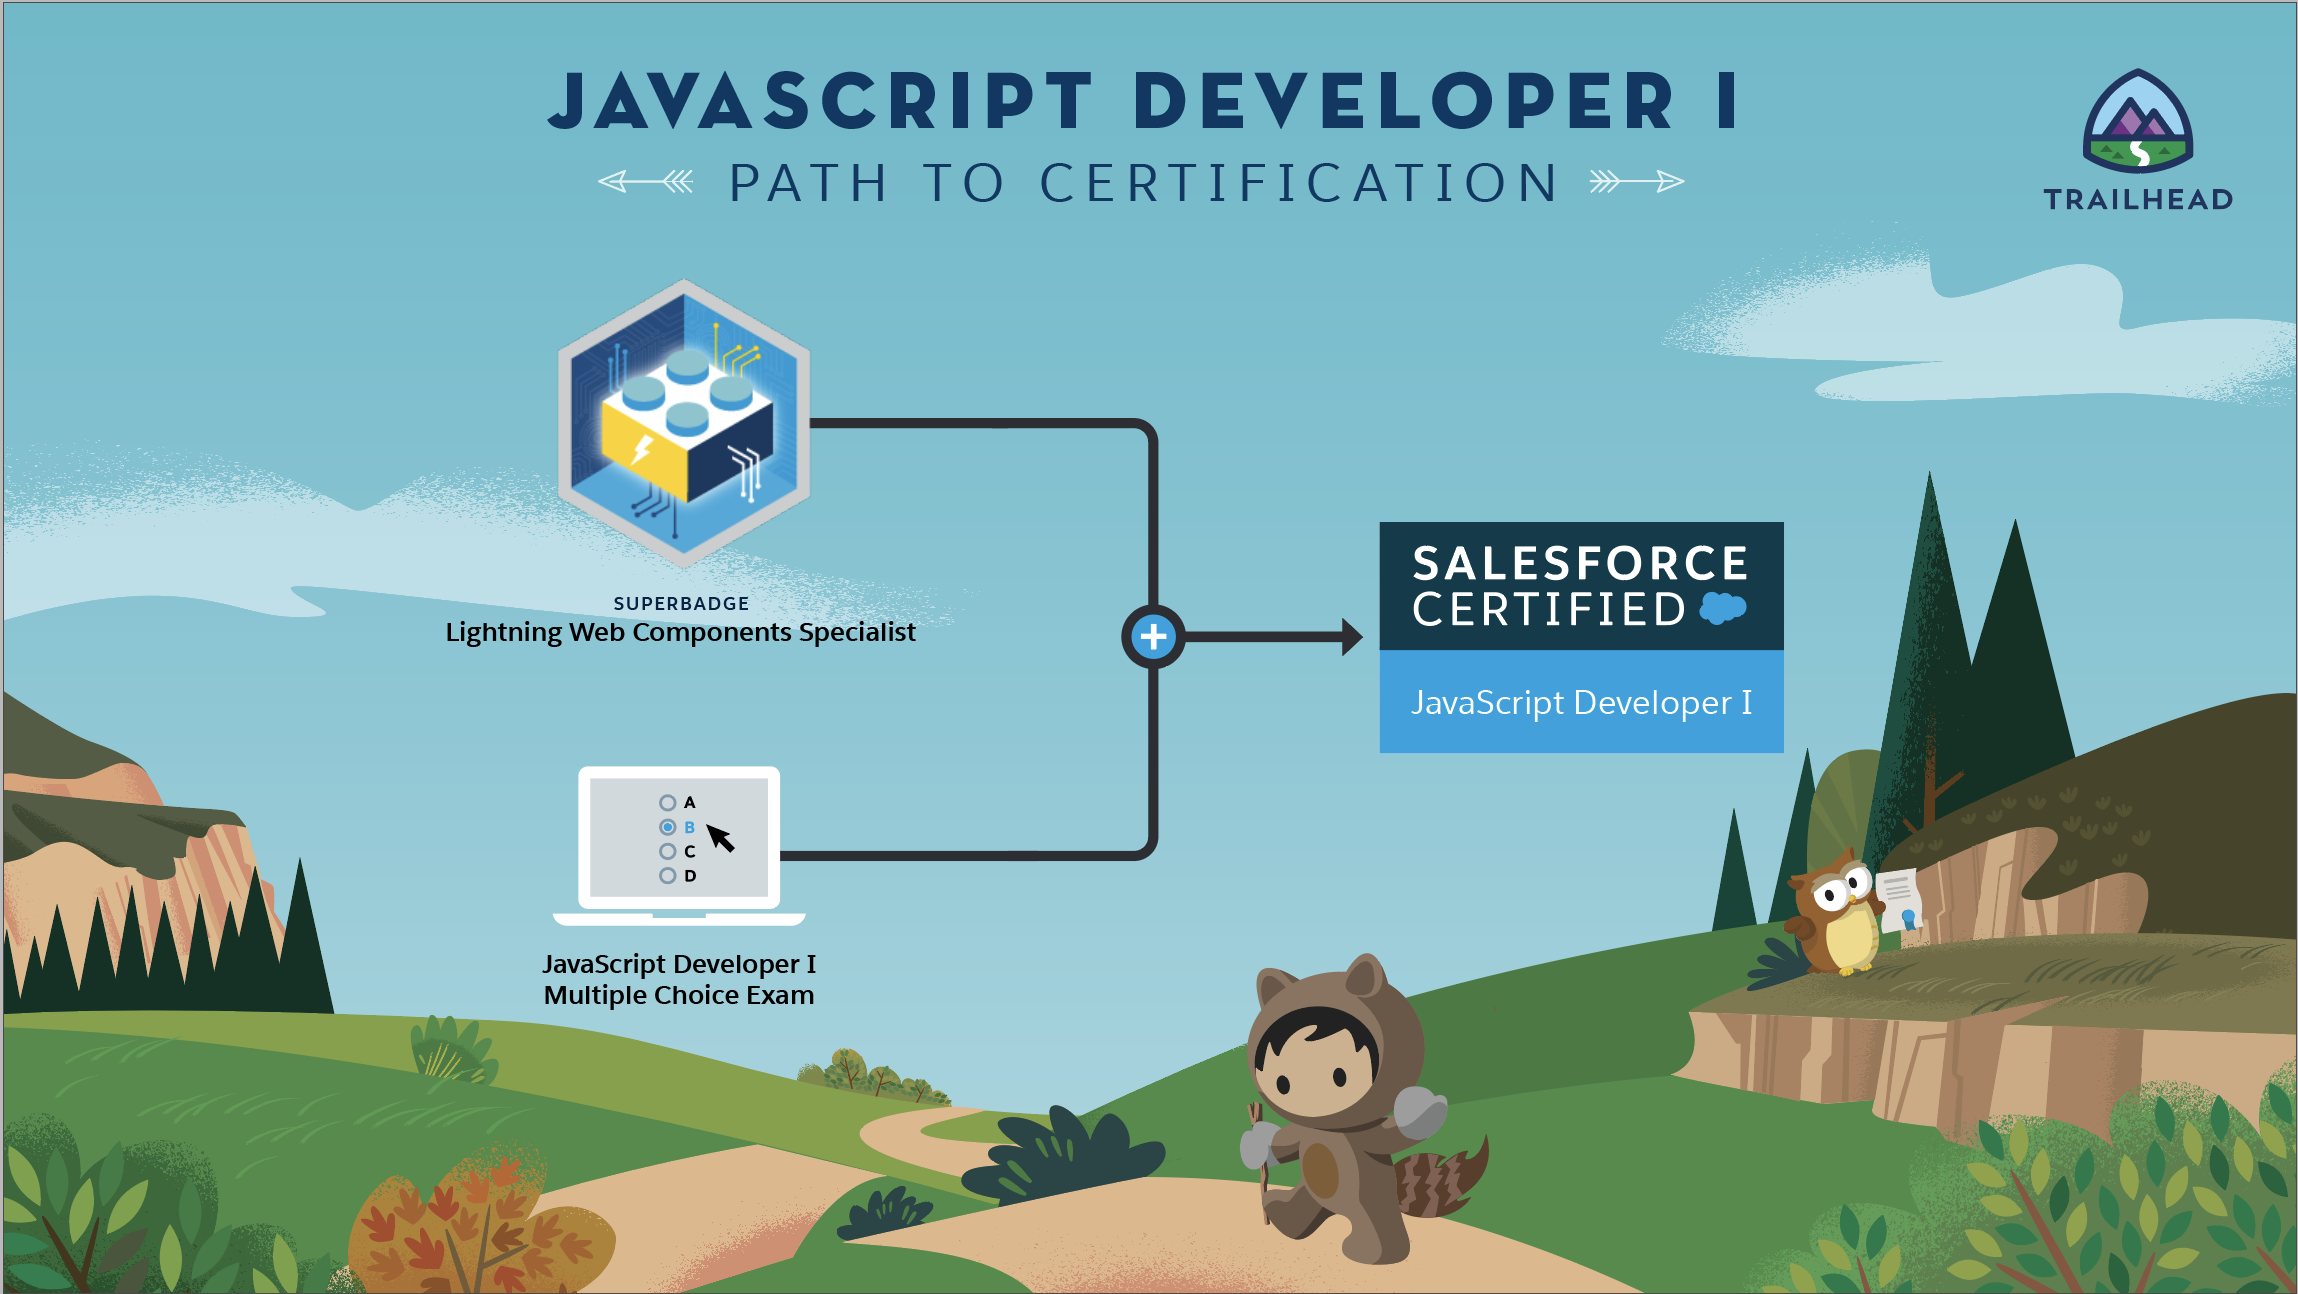 Path to the certification: the LWC Superbadge and the JS exam combined lead to the JavaScript Developer I cert.